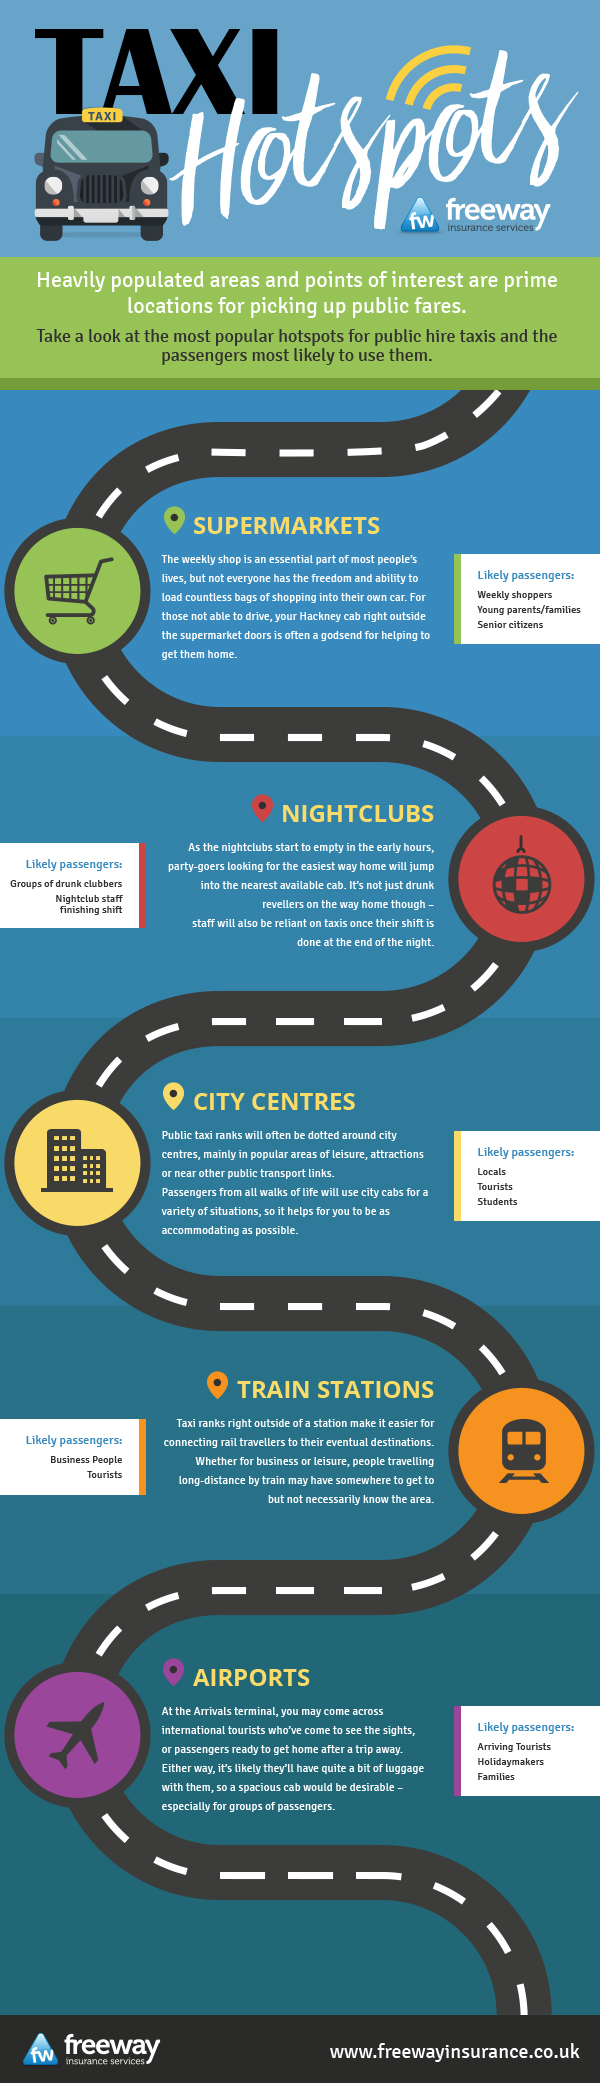 Taxi-Hotspots-Infographic